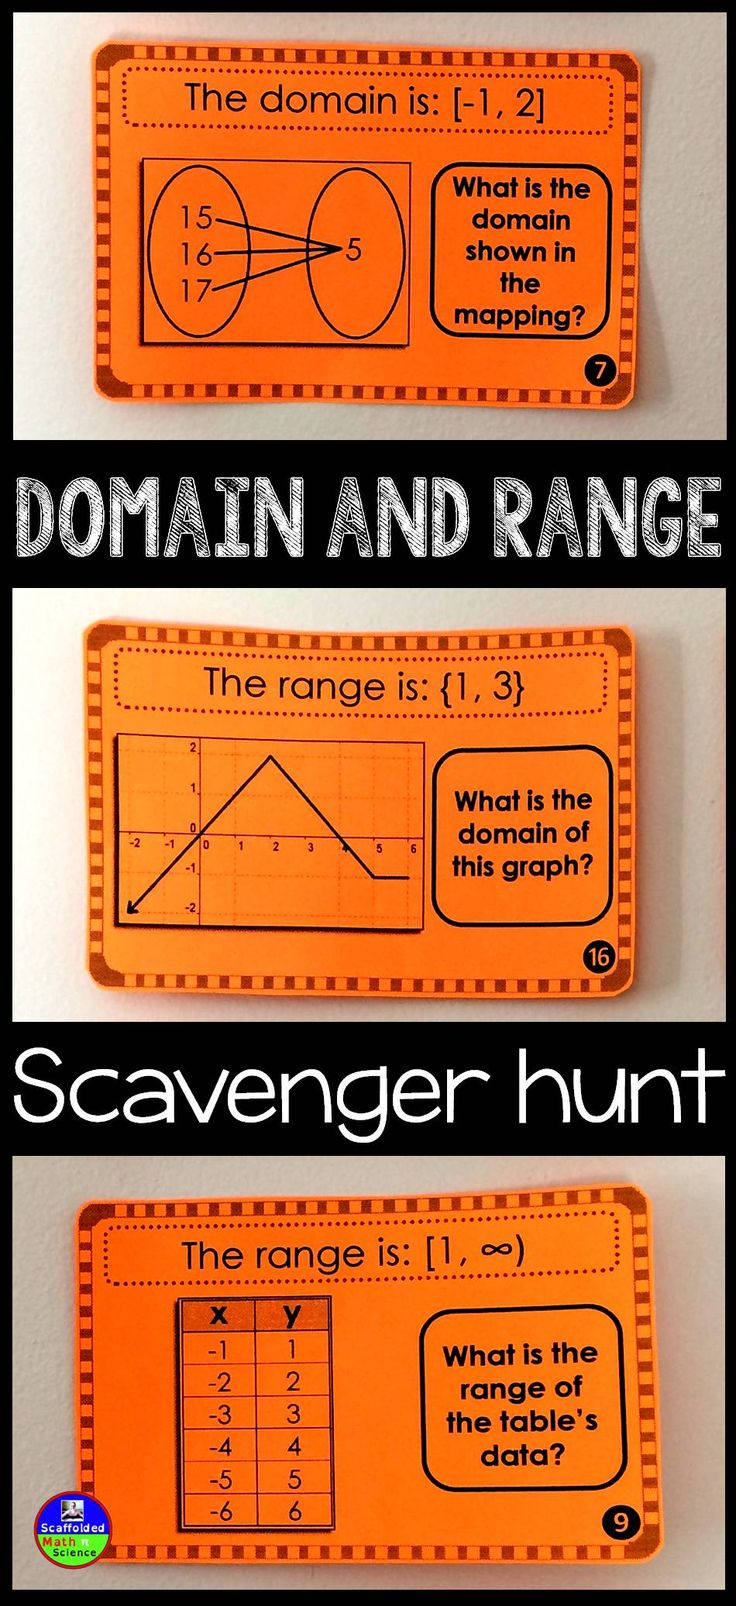 Domain and Range scavenger hunt! This is a fun activity to get gets moving to find domain and range as seen in graphs, scatter plots, coordinate pairs, mappings and tables.